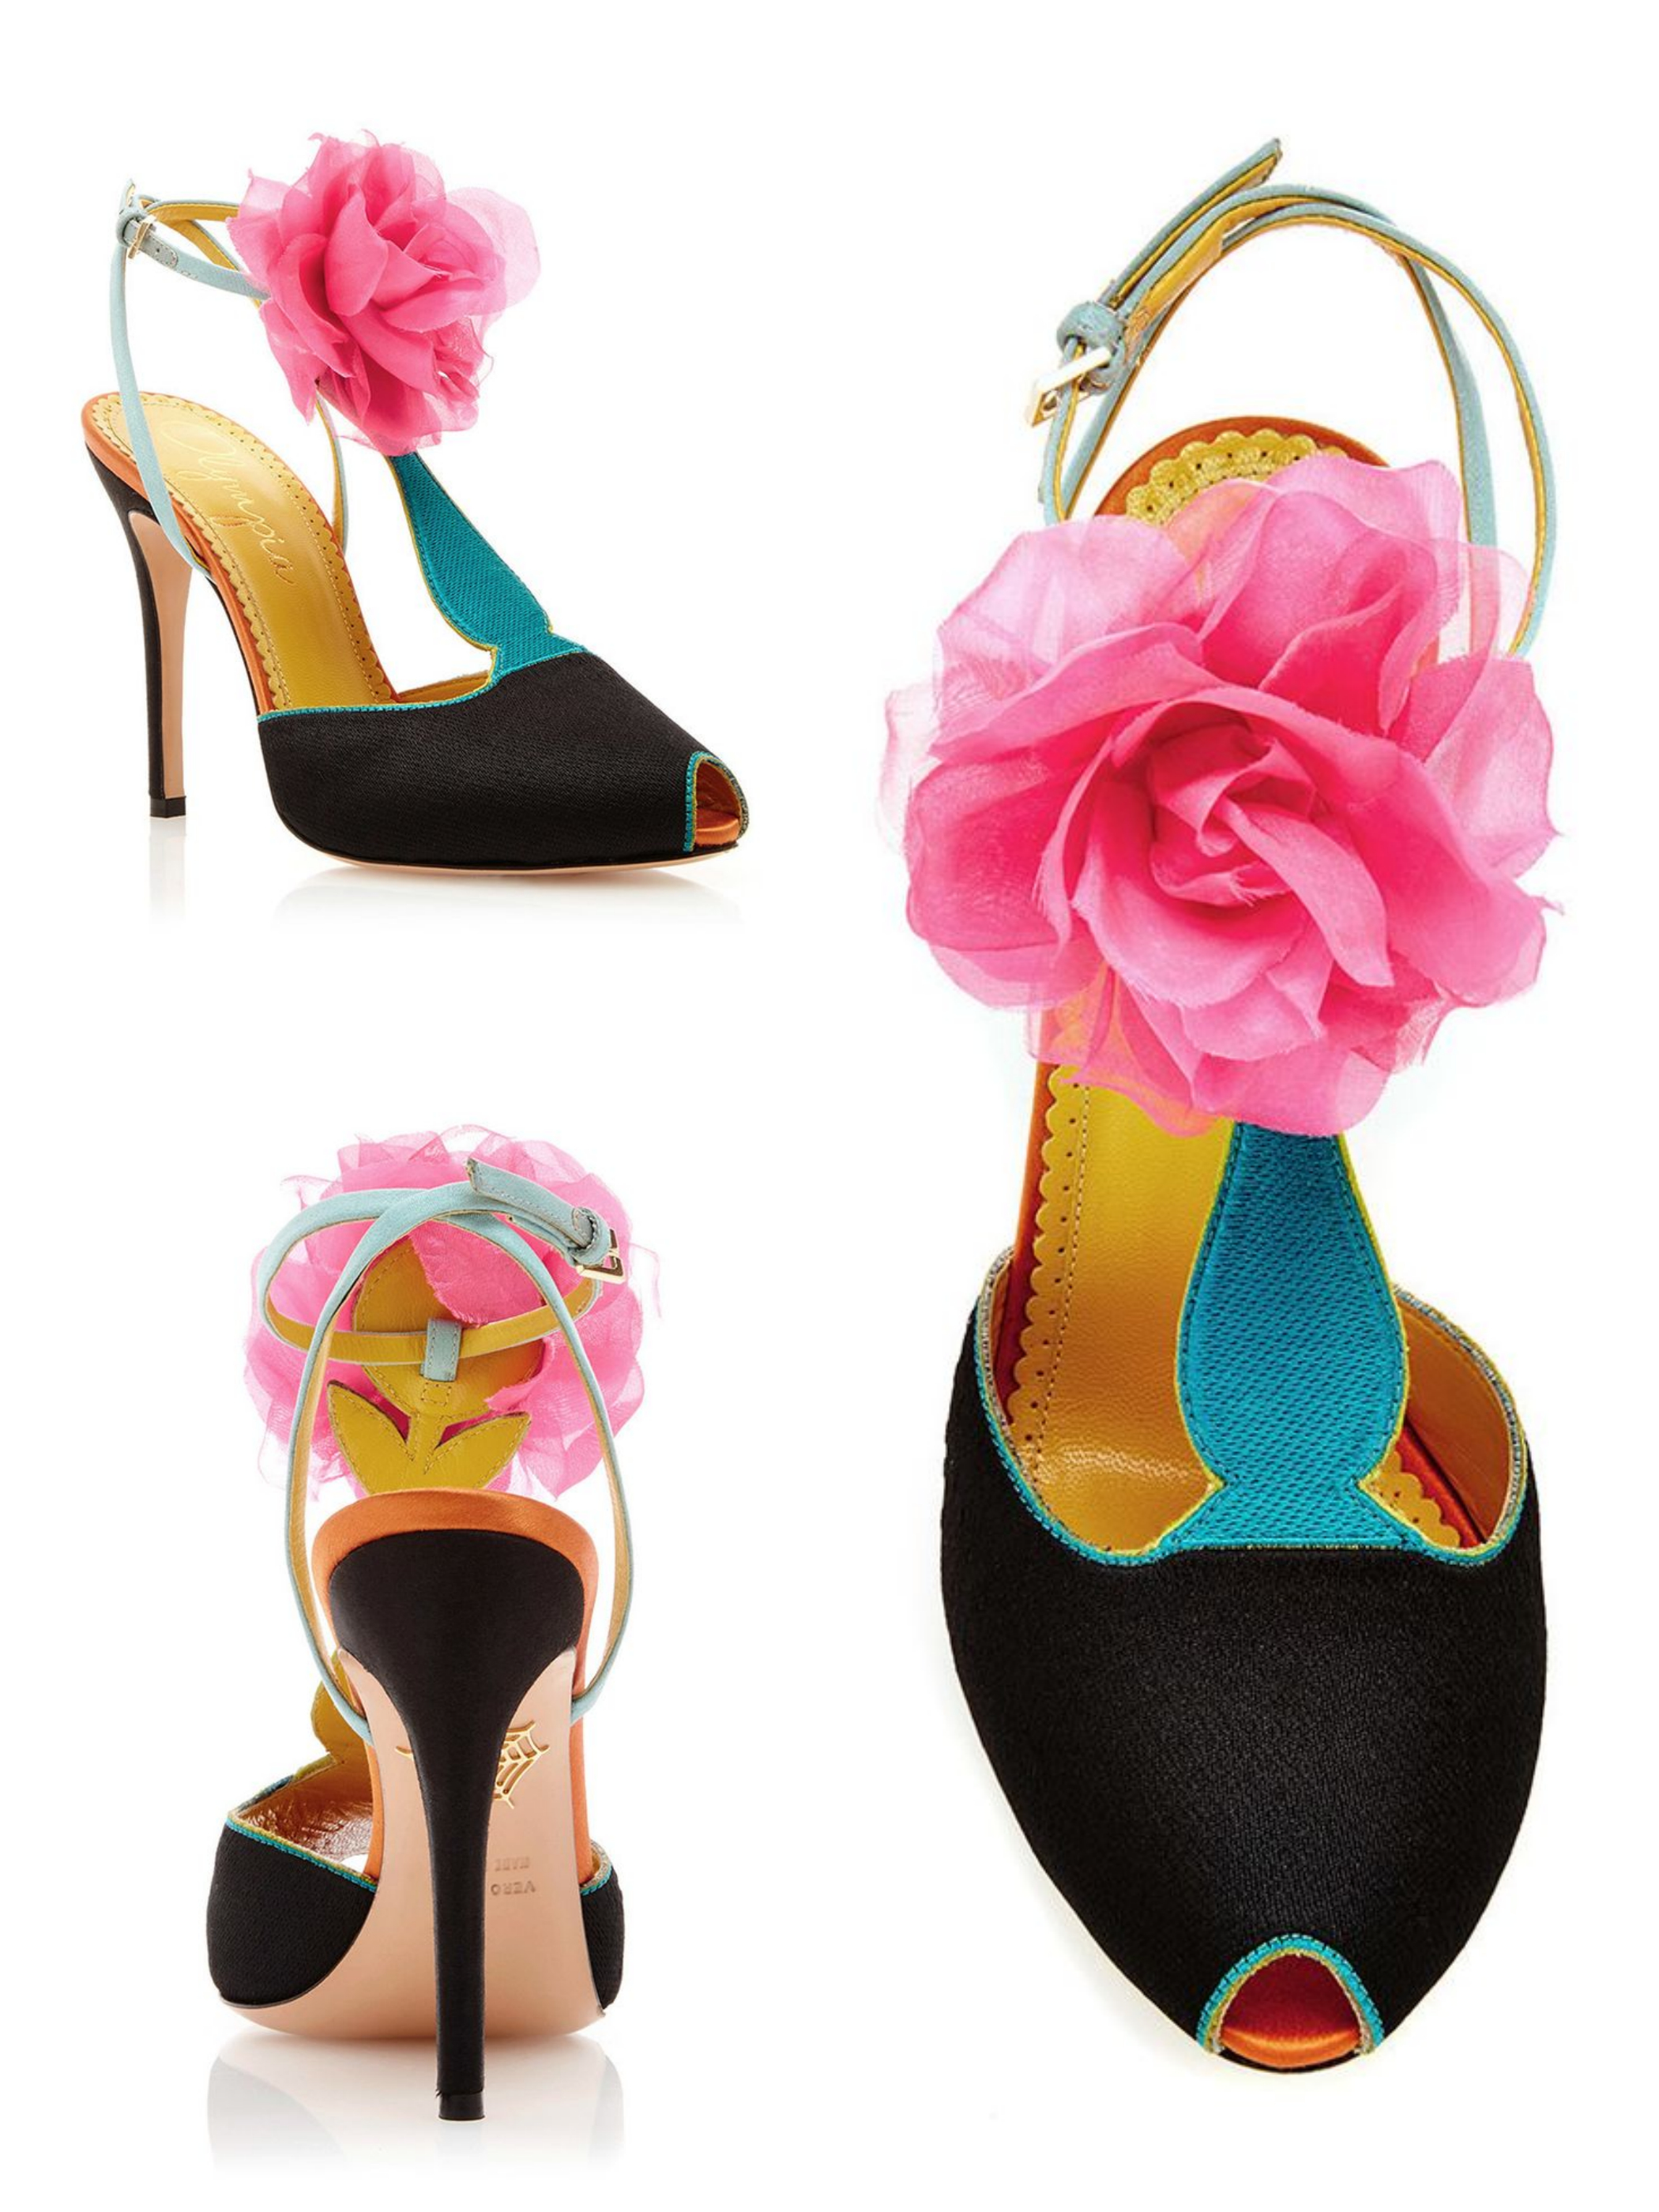 Charlotte Olympia, Silk Satin Amphora T Strap Heels with Floral Pom Pom